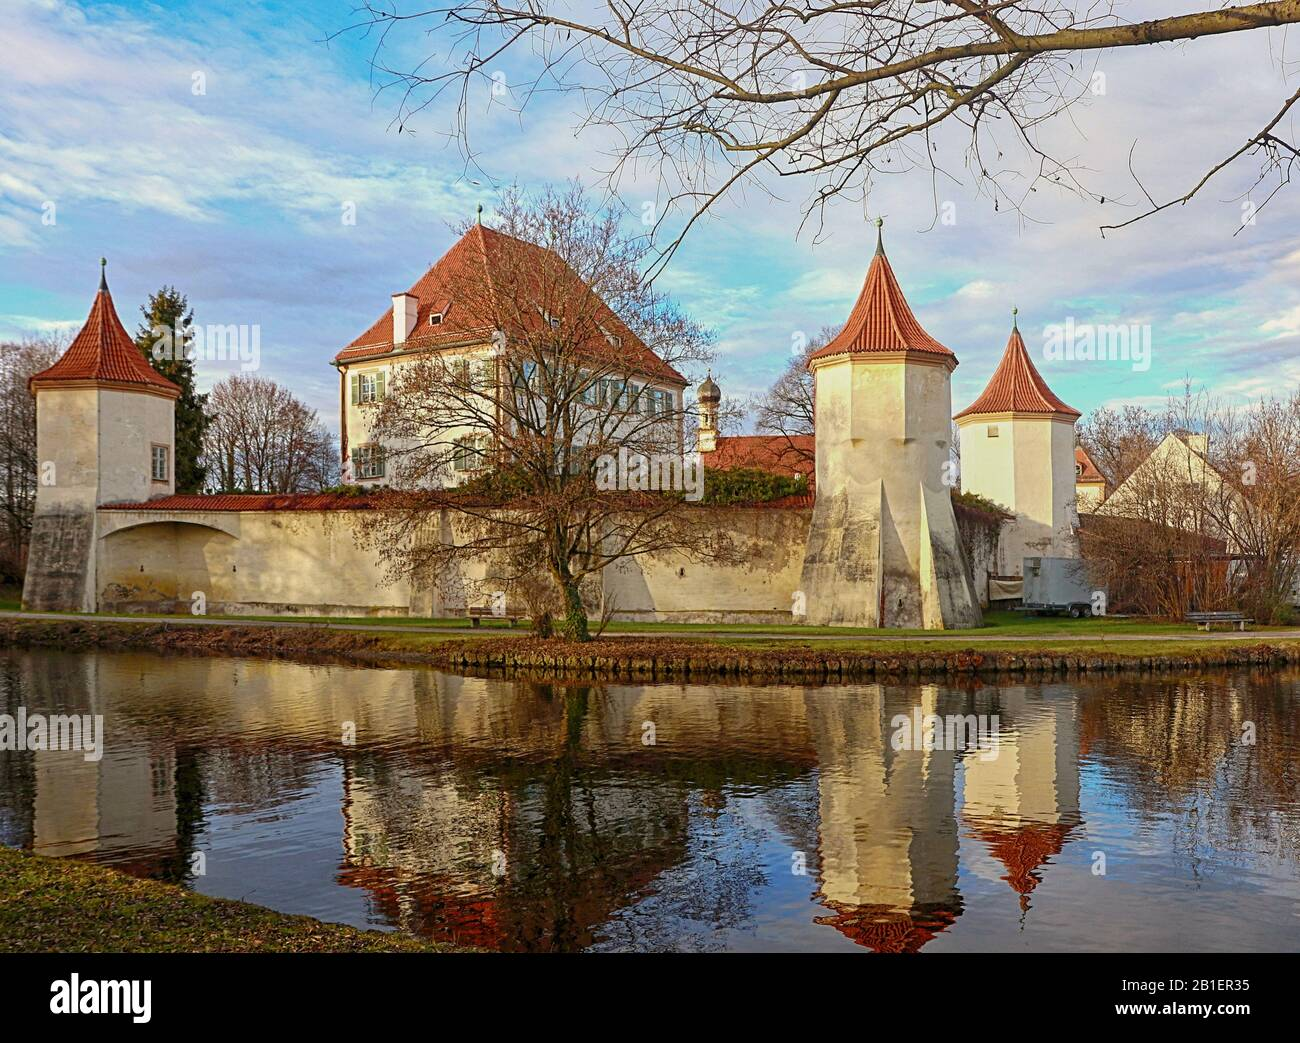 Munich, Blutenburg castle on the banks of Wuerm river, hunting lodge of the Duke of Bavaria built in the year 1439 Stock Photo